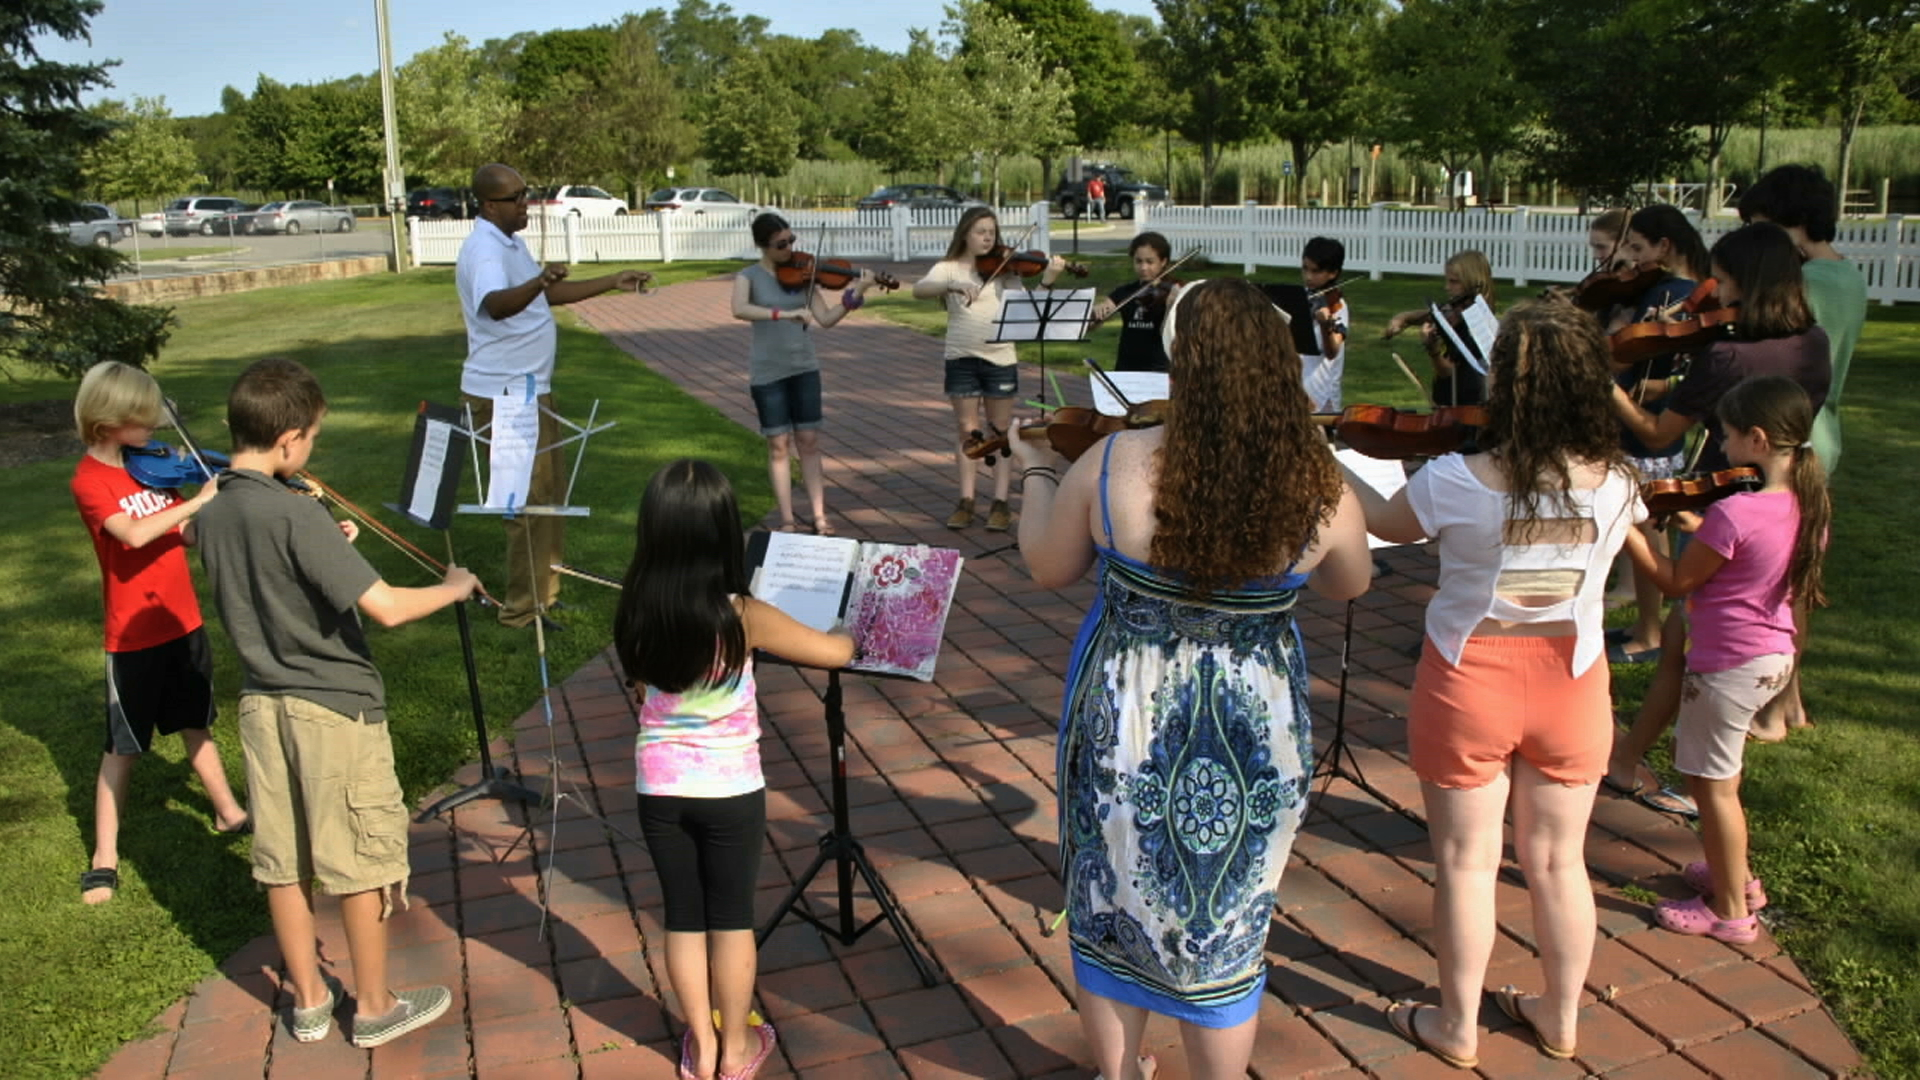 Students at the Perlman Music Program on eastern Long Island, featured on WLIW ArtsBeat on November 3, 2016.